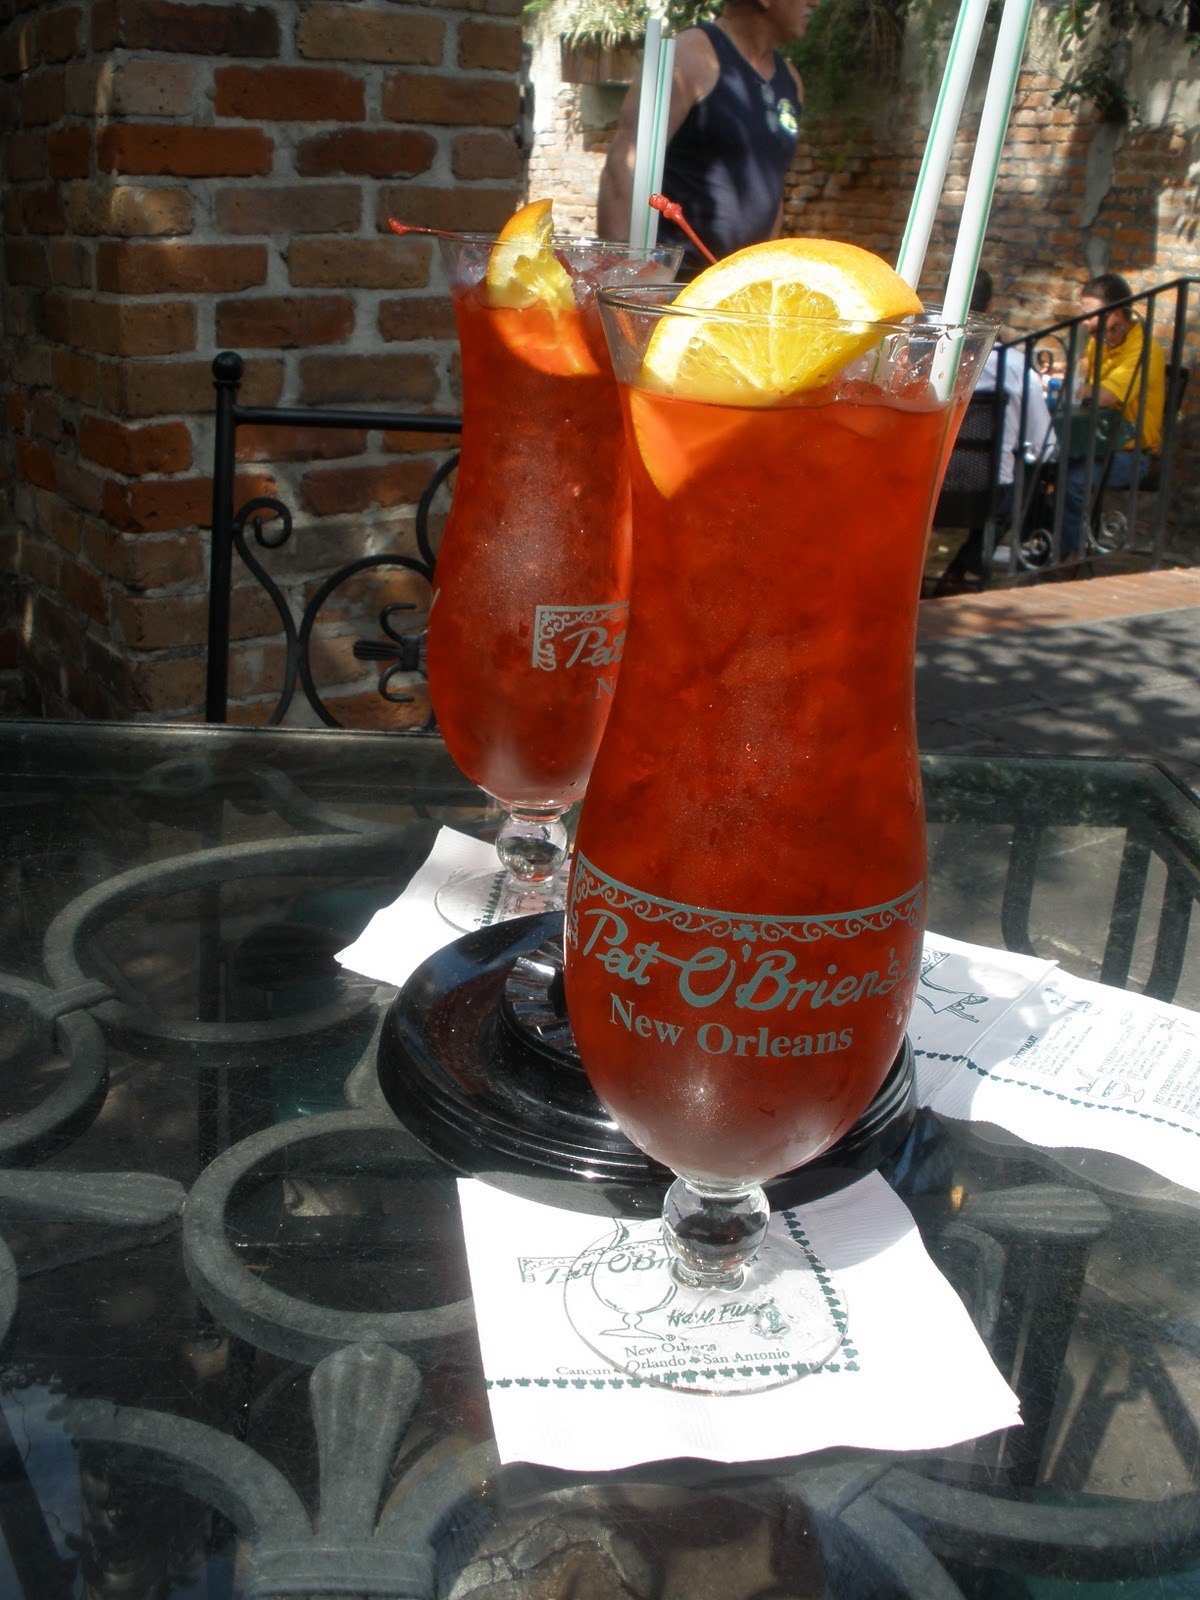 Our trip kicked off as any trip to the french quarter should sipping hurricanes in the courtyard at pat obriens pat os is credited with inventing the